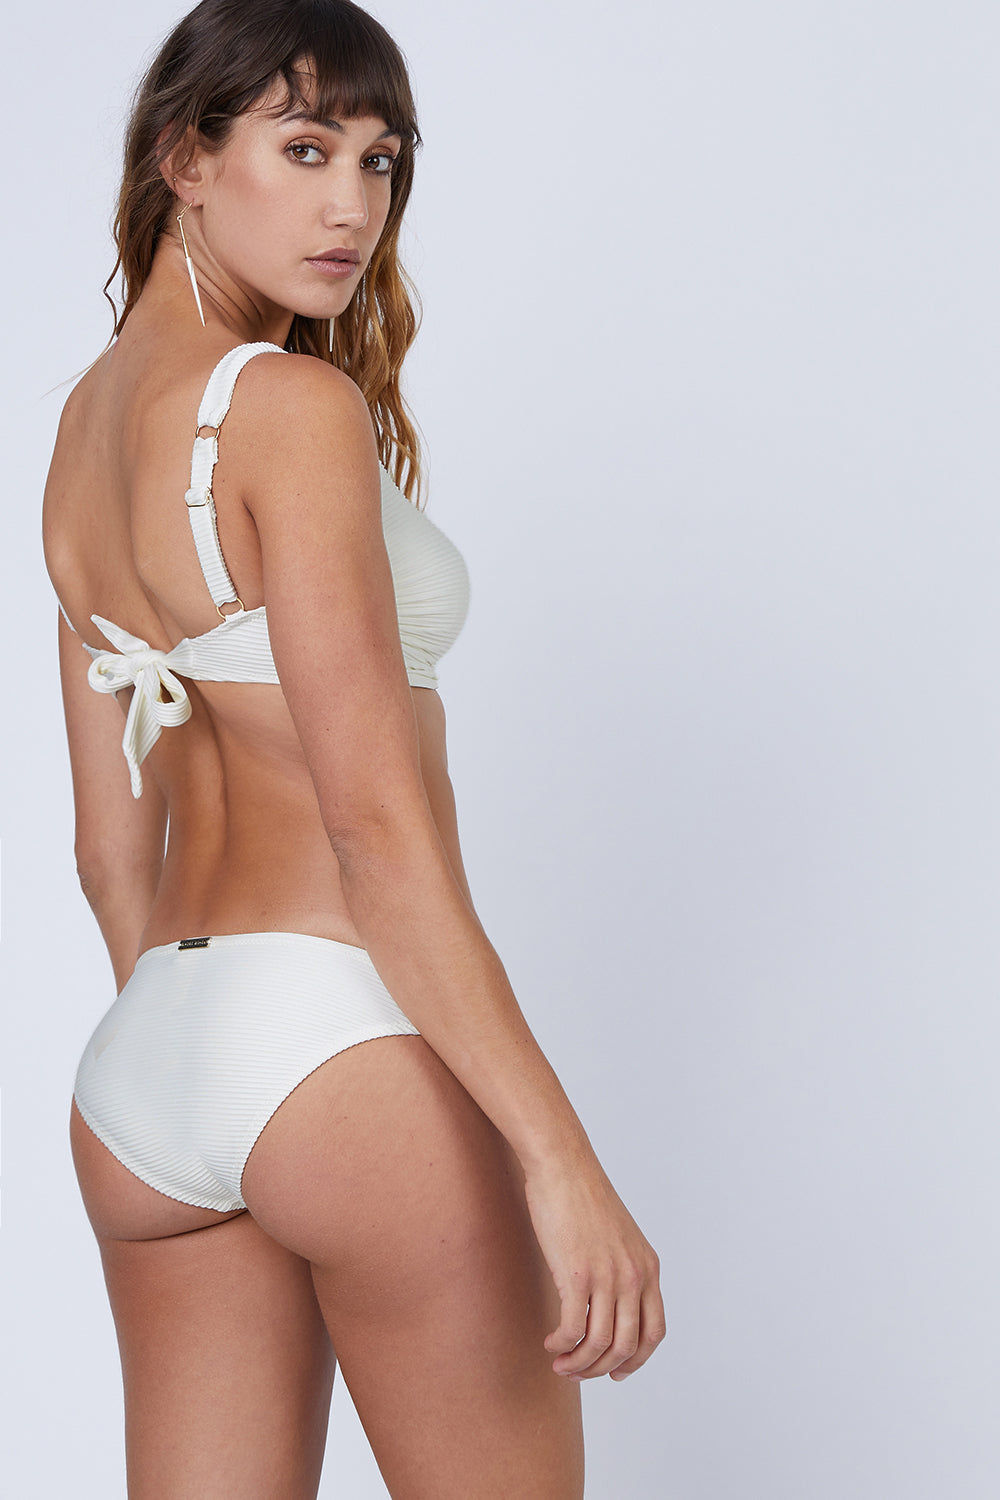 HEIDI KLEIN Rectangle Bikini Bottom - Cream Bikini Bottom | Cream| Heidi Klein Rectangle Bikini Bottom - Cream. Features:  Fully elasticated along waist and legs for a snug fit and to help stay in place when wearer is swimming and fully lined in soft lining for ultimate comfort. Heidi Klein branded charm detail on back for a luxurious finish. Features bespoke Heidi Klein shiny rectangle hardware at the side seams. Back View